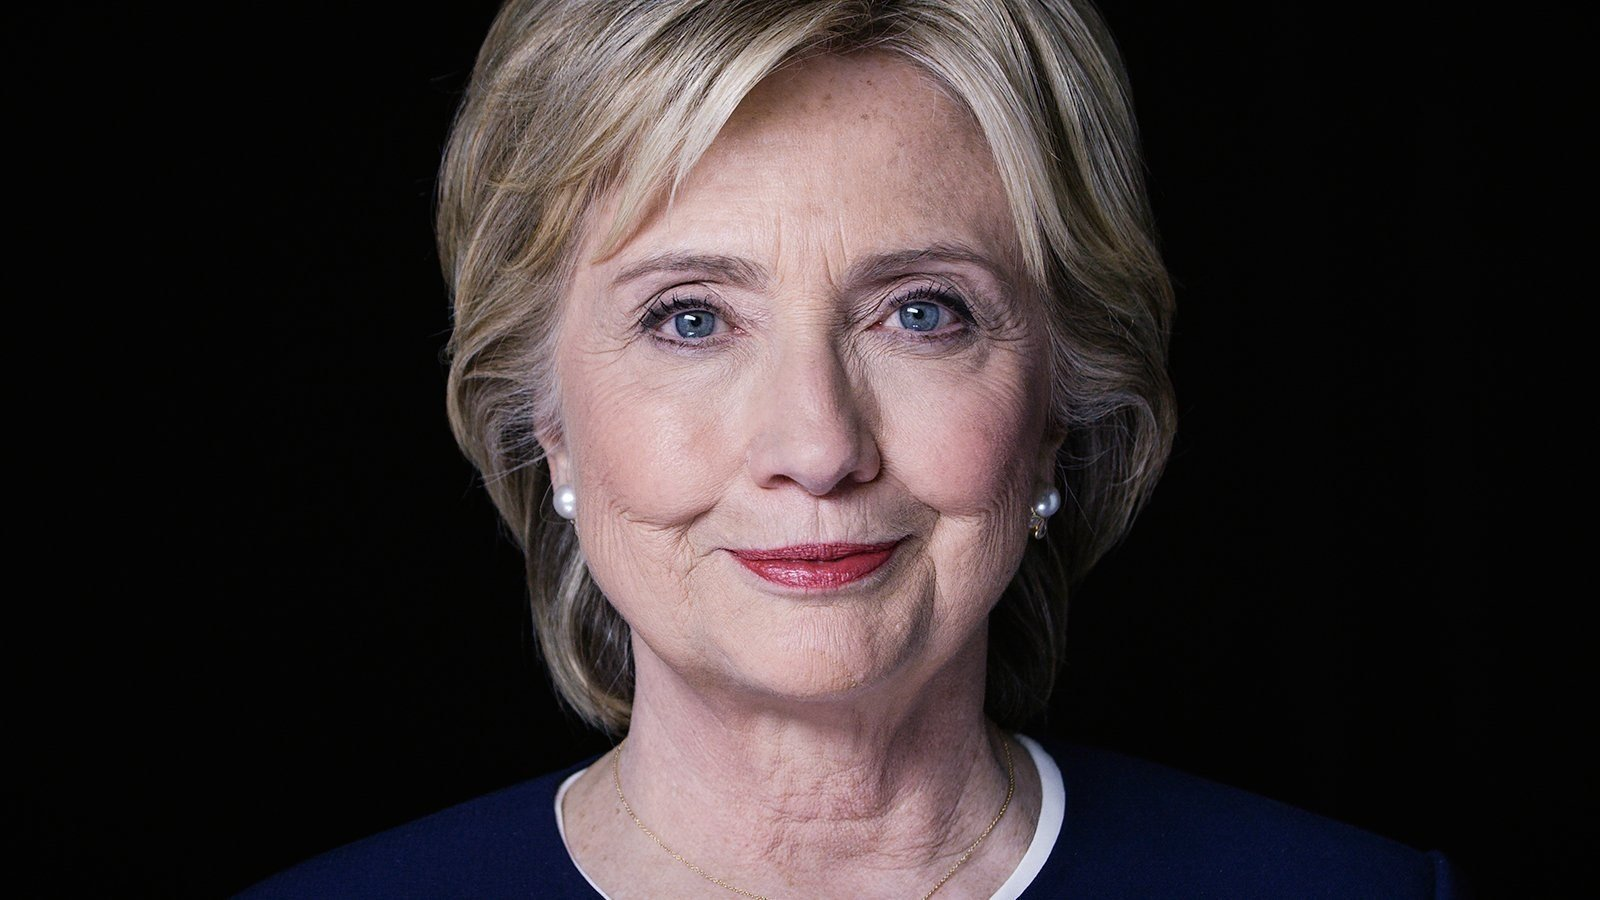 Conservative super PAC to air ad hitting Clinton on paid speech transcripts